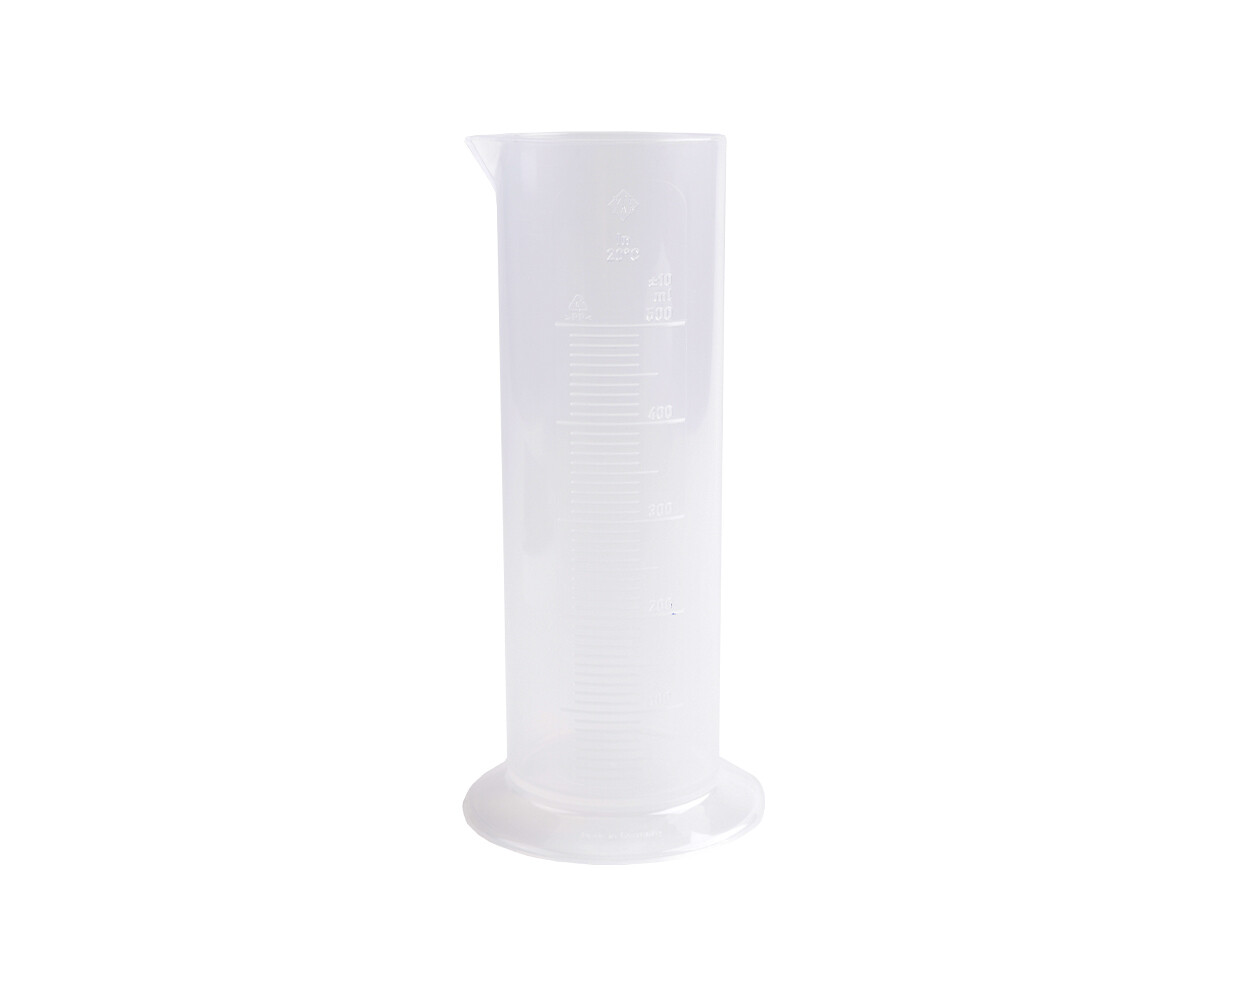 Measuring cylinder 50ml - Plastic Graduate